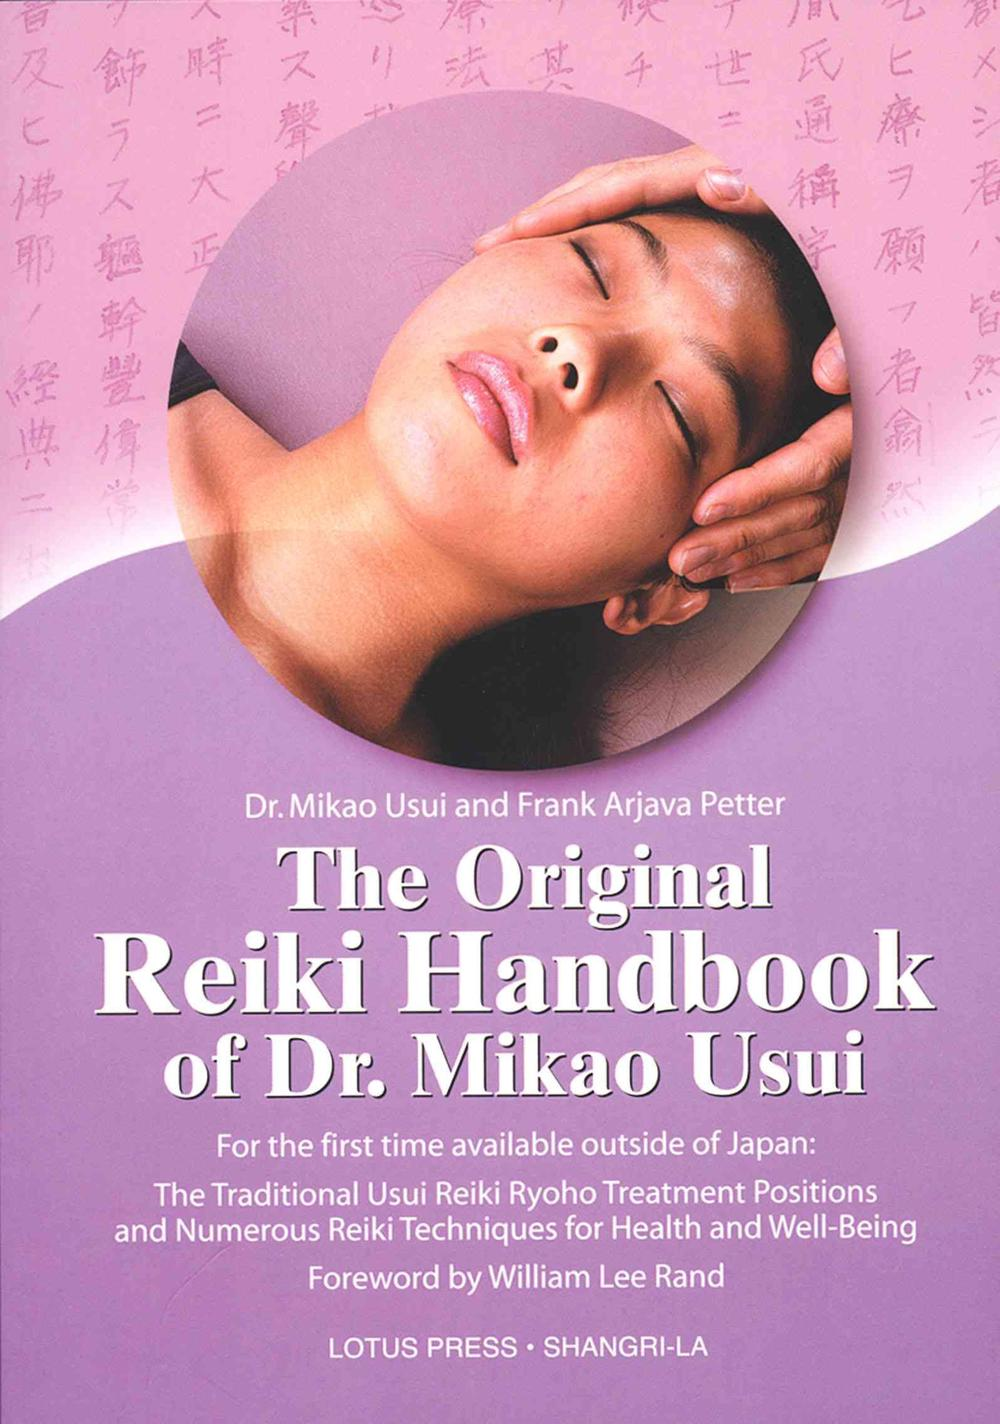 The Original Reiki Handbook of Dr. Mikao Usui by Mikao Usui, ISBN: 9780914955573